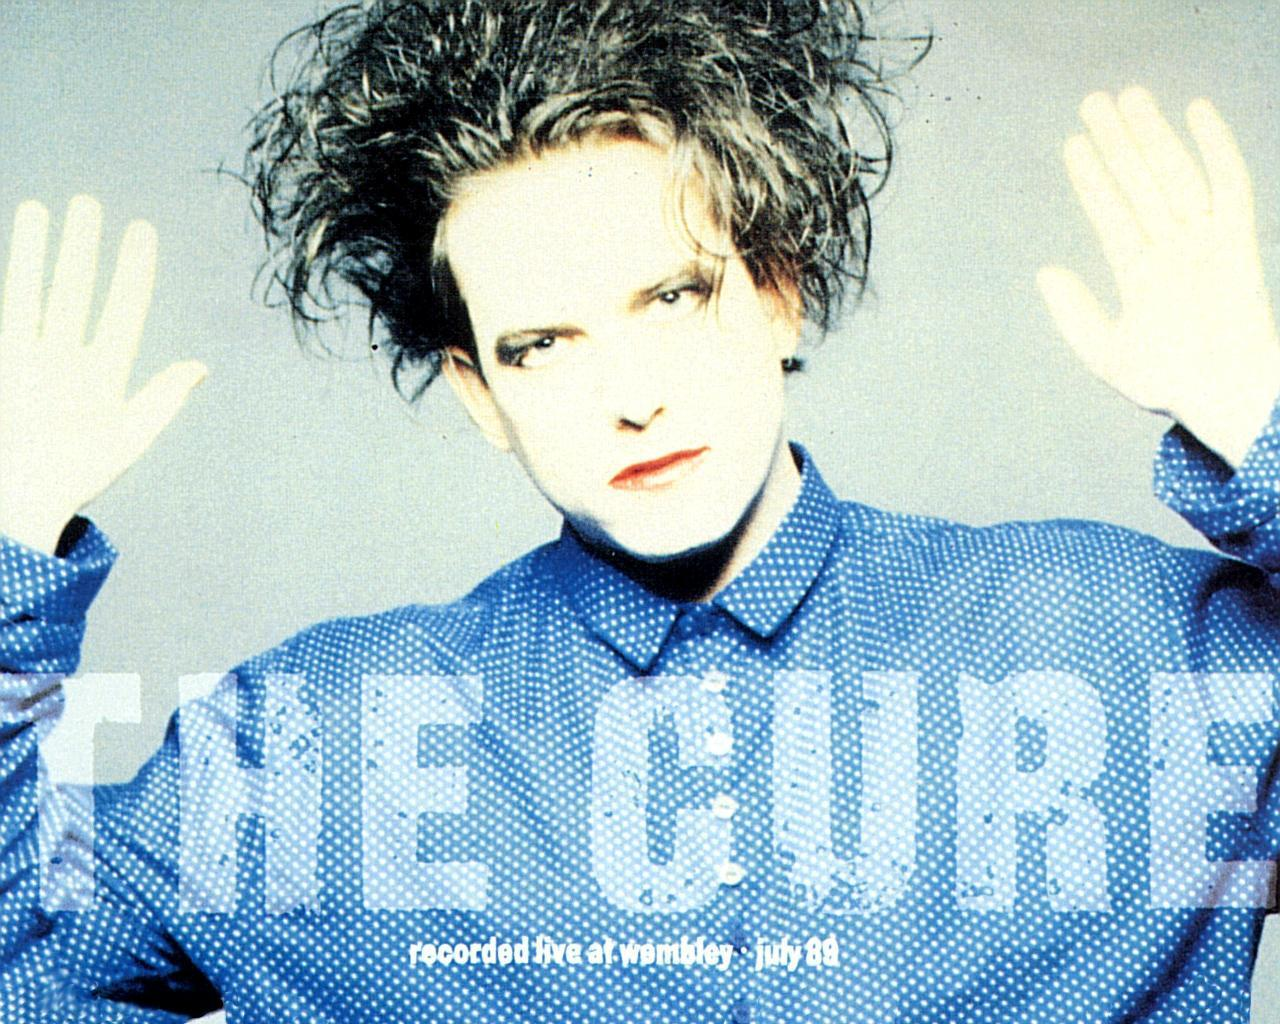 http://4.bp.blogspot.com/-Y664rcGtuZA/T1Crk3PdqrI/AAAAAAAAAhQ/sZTxhT5Zw-A/s1600/The-Cure-Cover-Art-the-cure-2194168-1280-1024.jpg